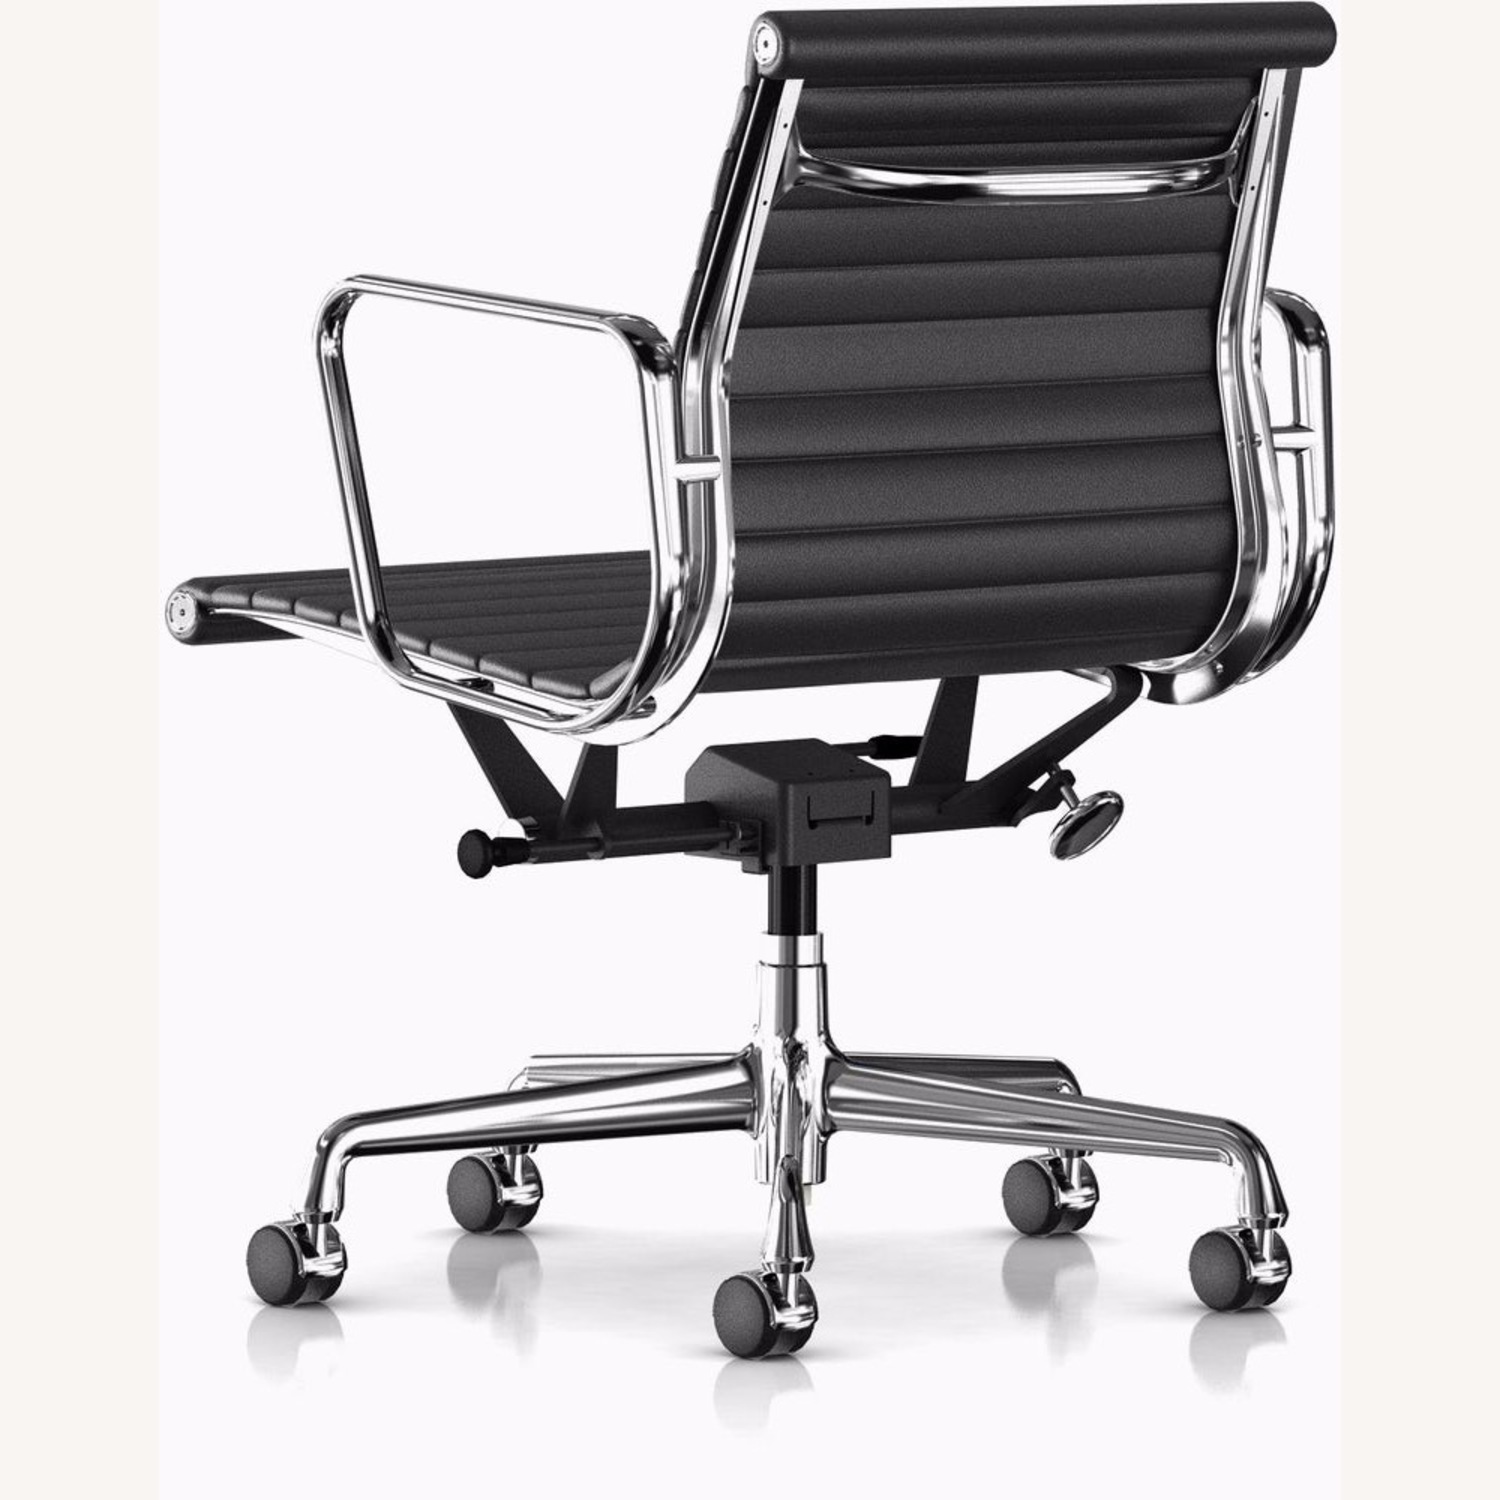 Eames Aluminum Group Chair - image-1